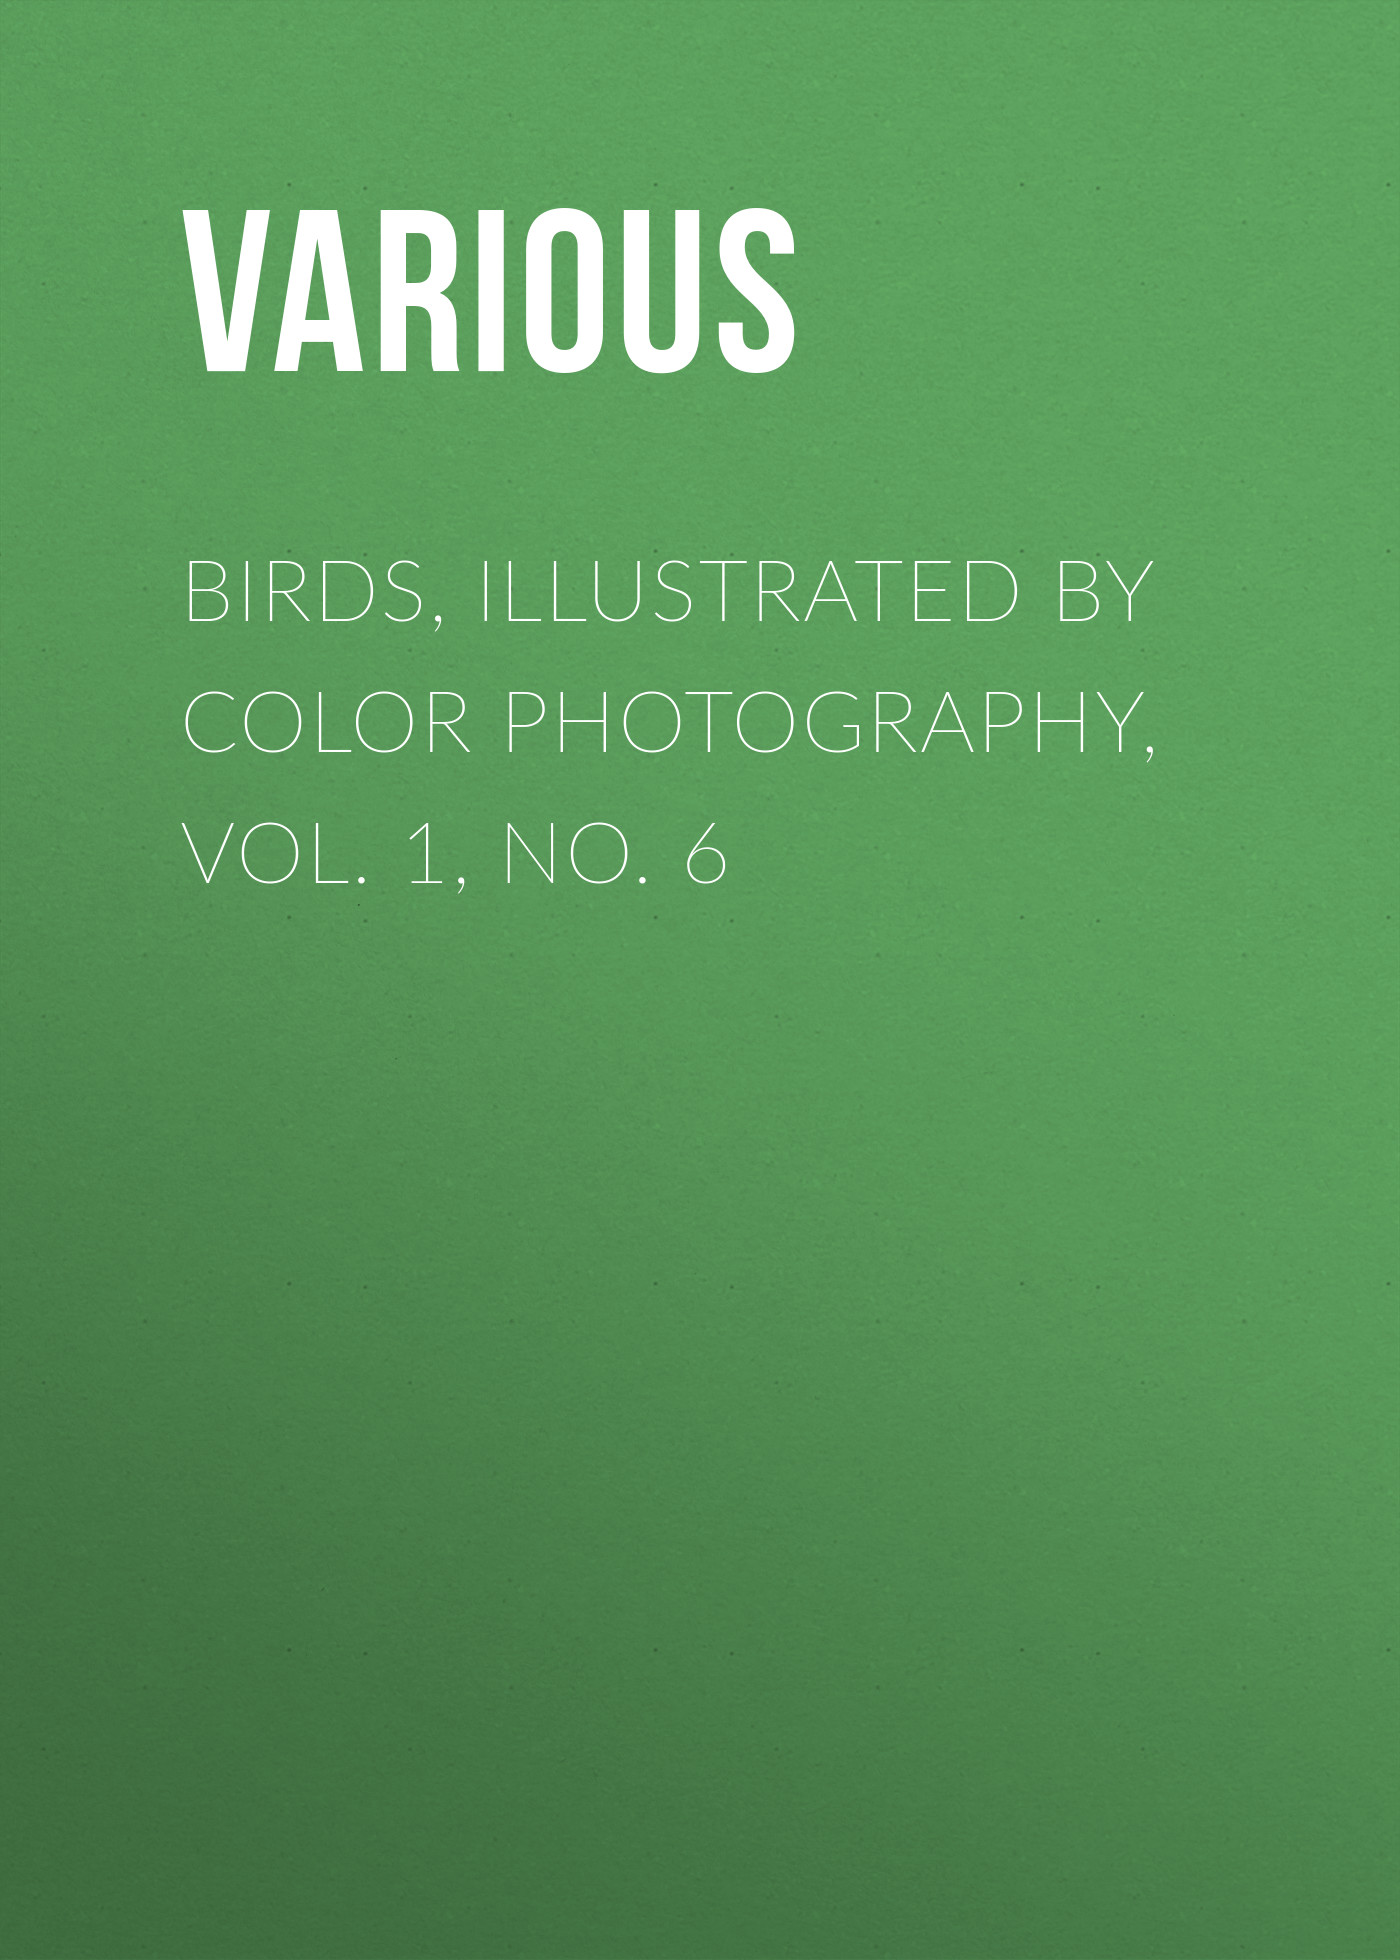 Various Birds, Illustrated by Color Photography, Vol. 1, No. 6 d 6521 dark grey backdrop newborn photography backdrop retro pure color pet photography backgrounds 4x6ft 1 25x2m